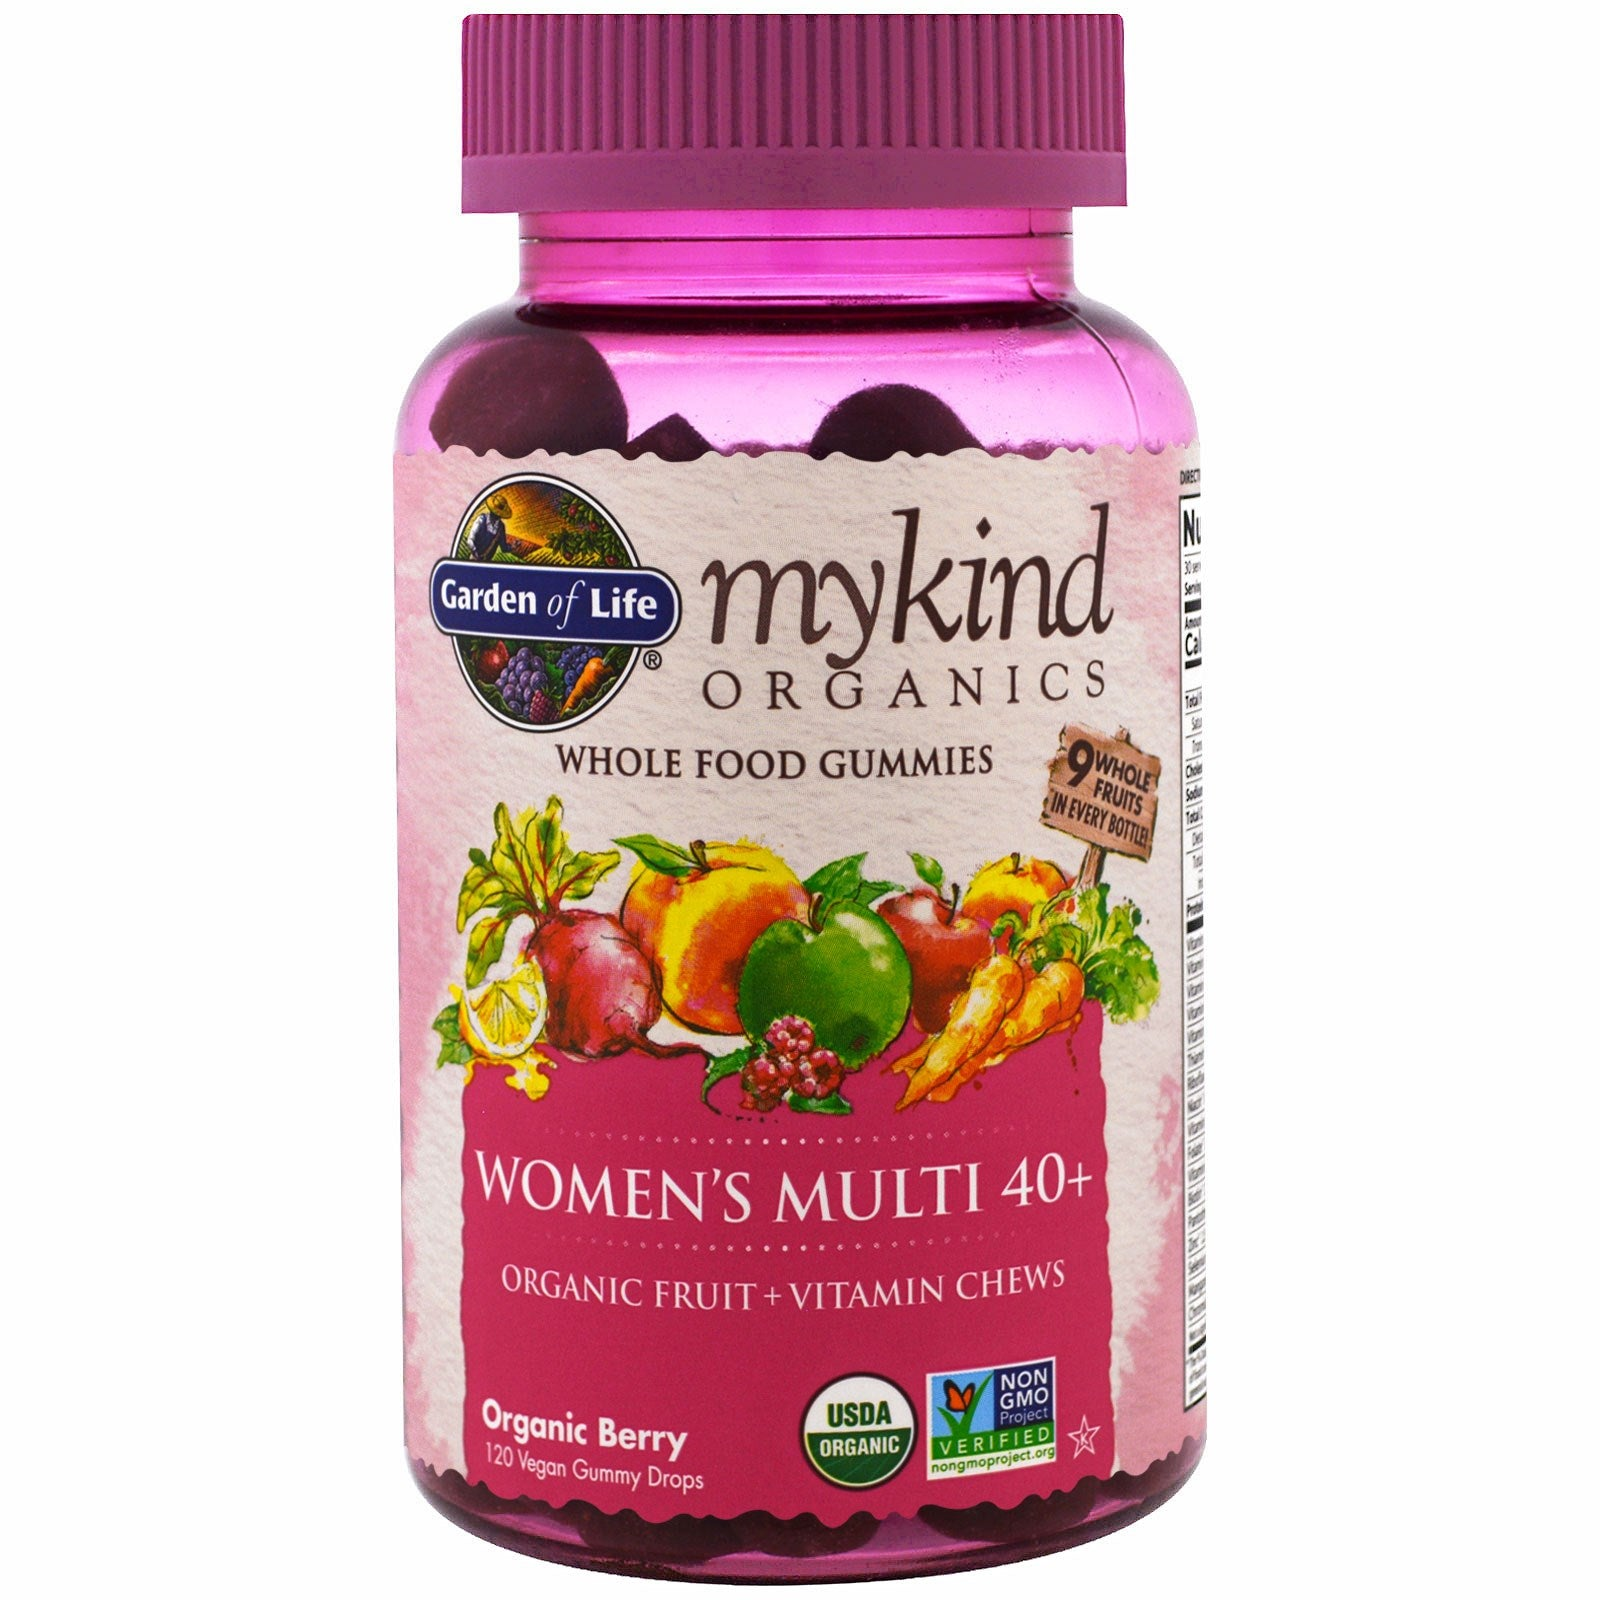 Garden of Life mykind Organics Women's 40 Multi Gummy, 120 gummies.-NaturesWisdom